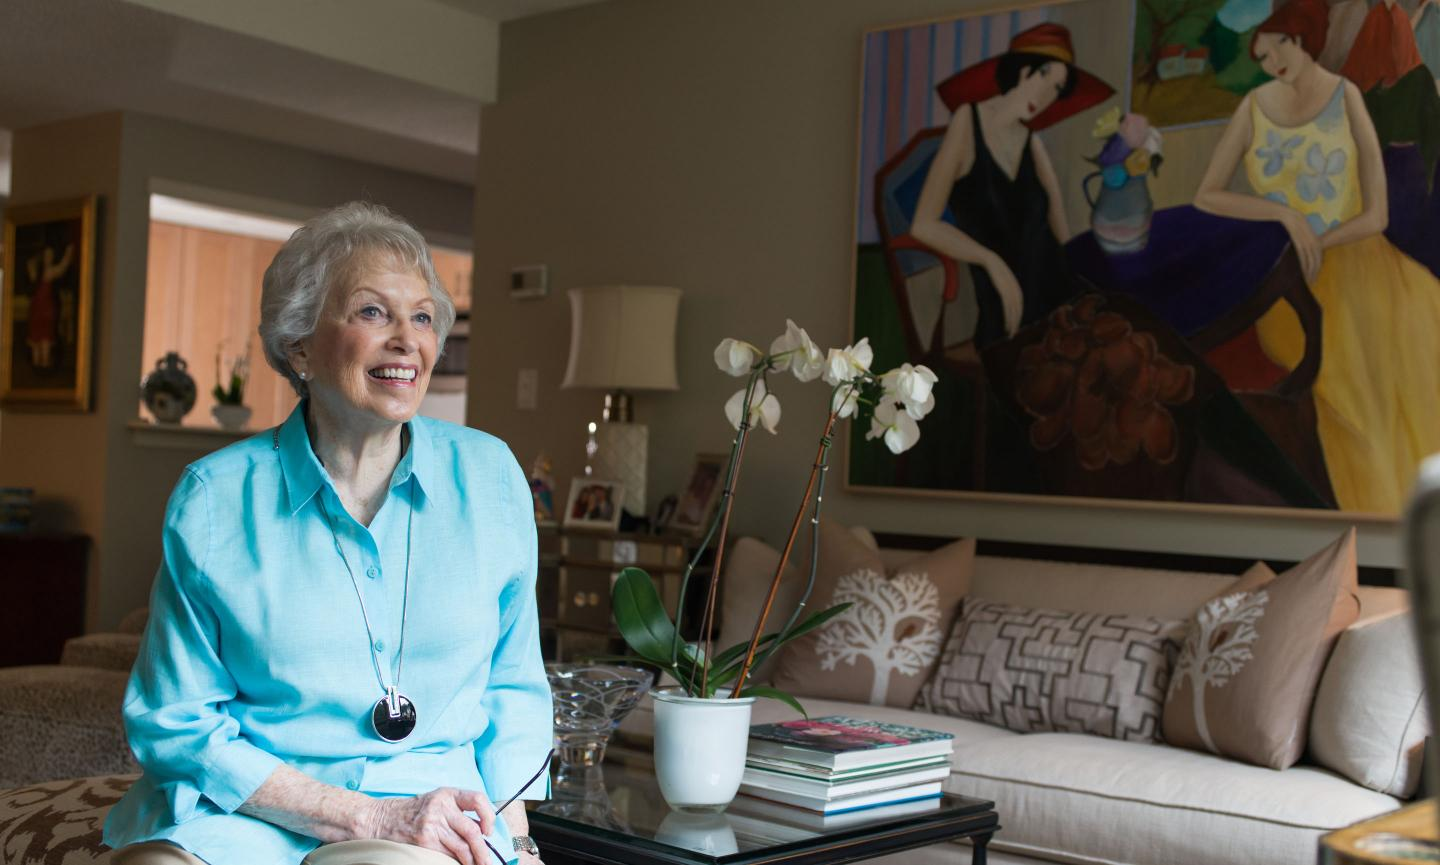 Attractive smiling older woman in a turquoise shirt sits on a couch in her well-appointed independent living apartment.